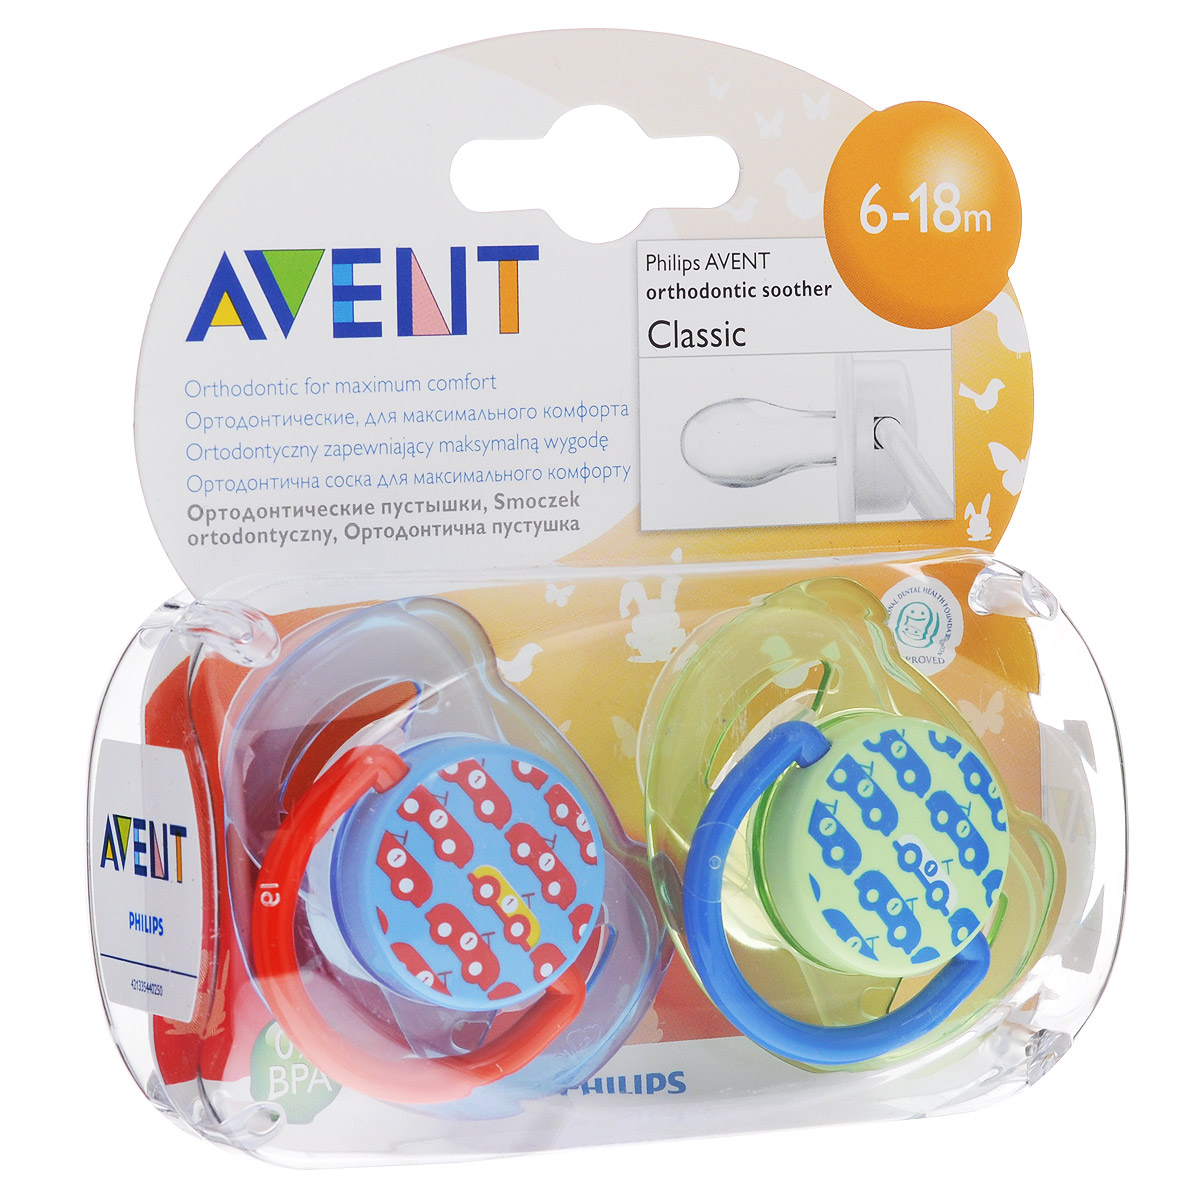 Philips Avent Пустышка серия FreeFlow SCF172/22 для мальчиков, 2 шт., 6-18 мес. avent philips freeflow 6 18 мес уп 2шт bpa free avent авент